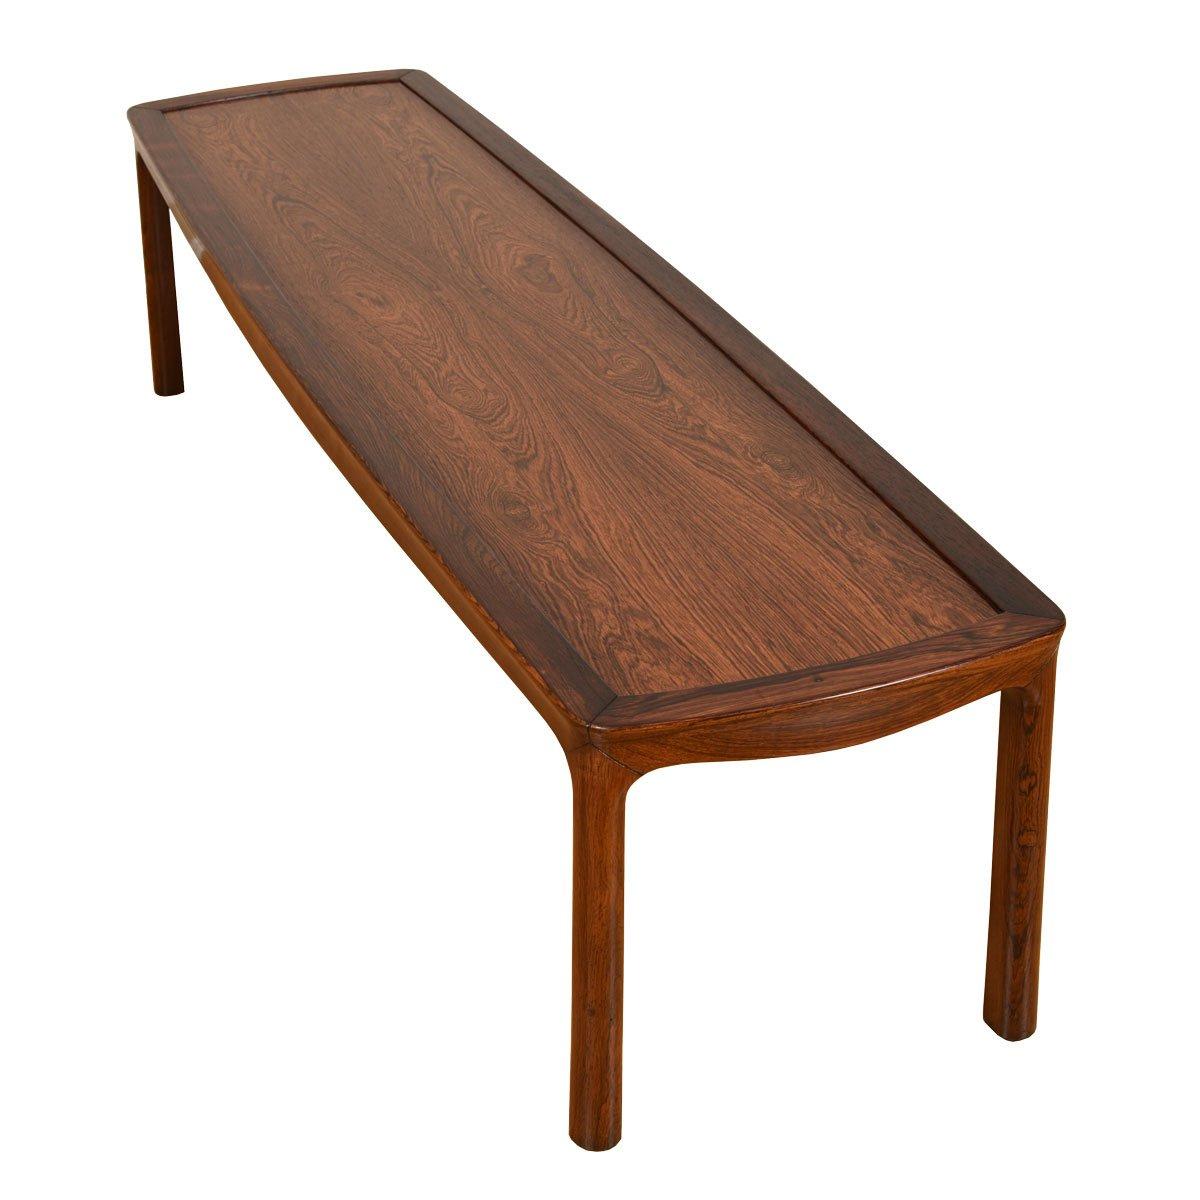 Dunbar Rosewood Coffee / Cocktail Table.